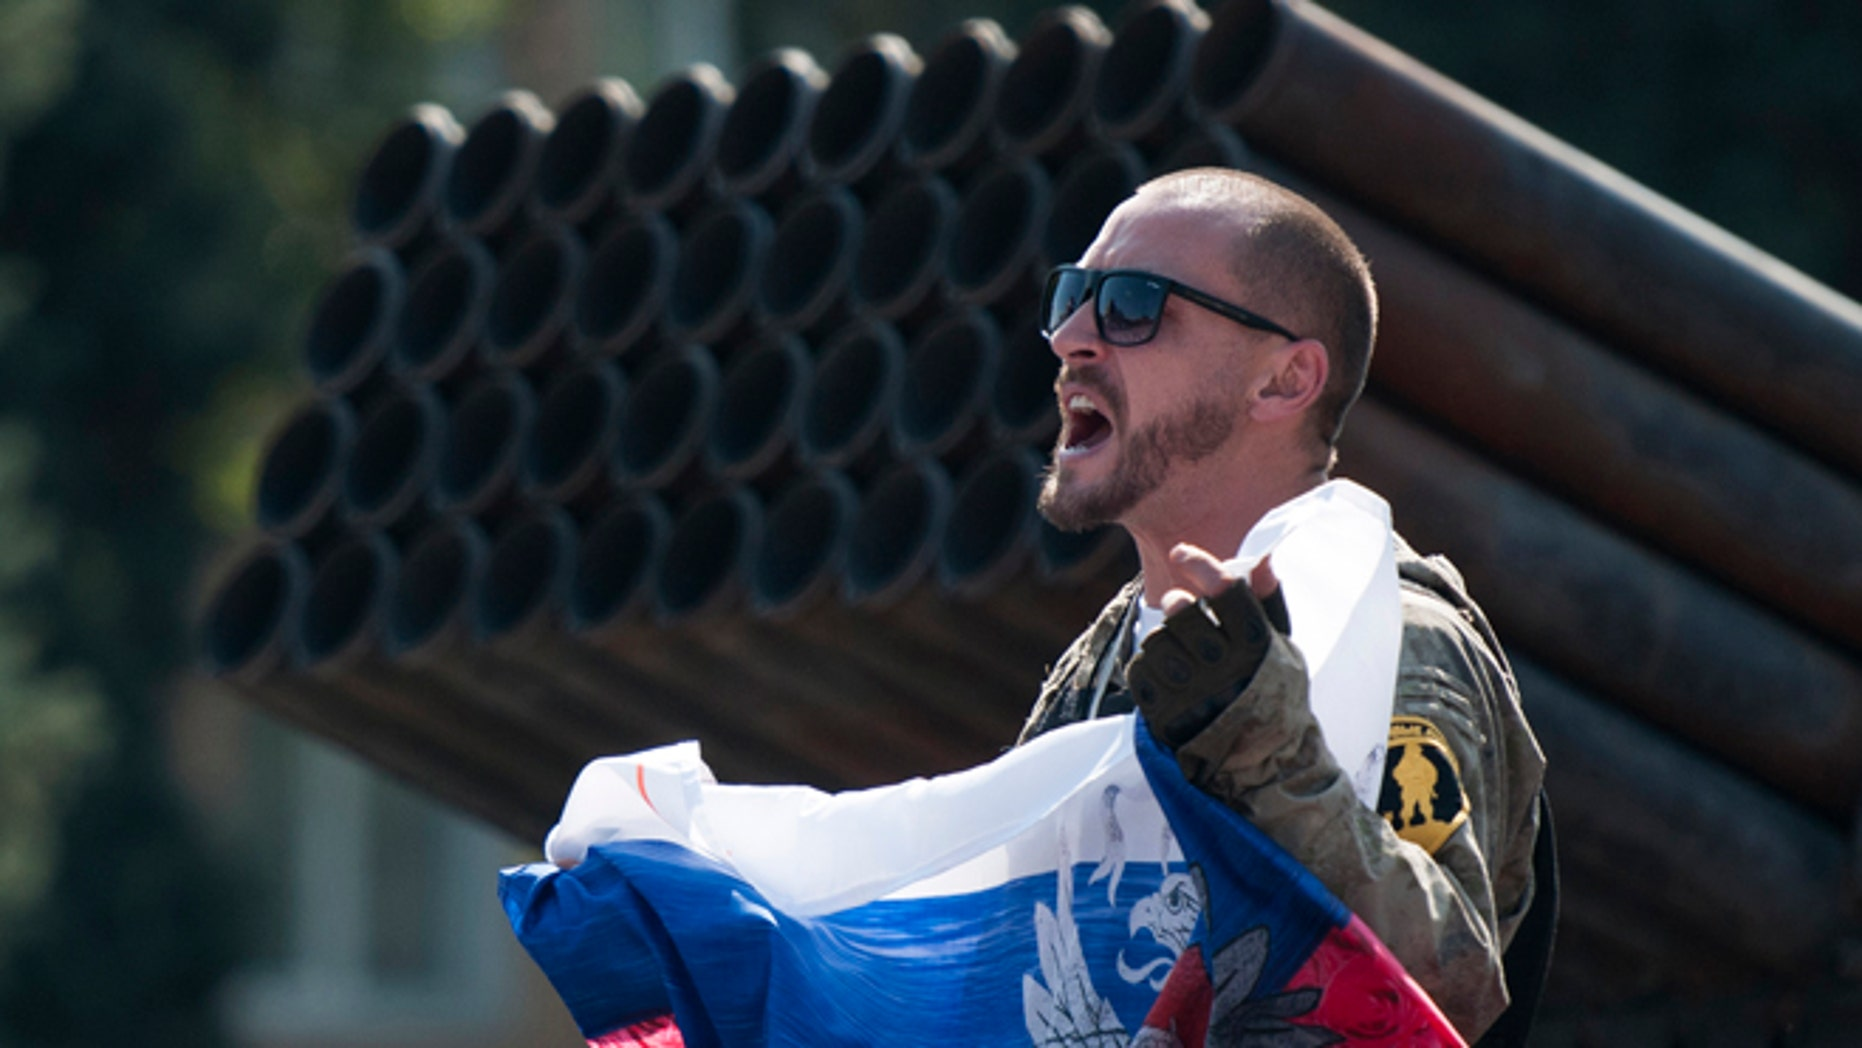 Aug. 24, 2014: A pro-Russian rebel holds a Russian national flag near to damaged heavy hardware from the Ukrainian army during an exhibition in the central square in Donetsk, eastern Ukraine. (AP/Antoine E.R. Delaunay)